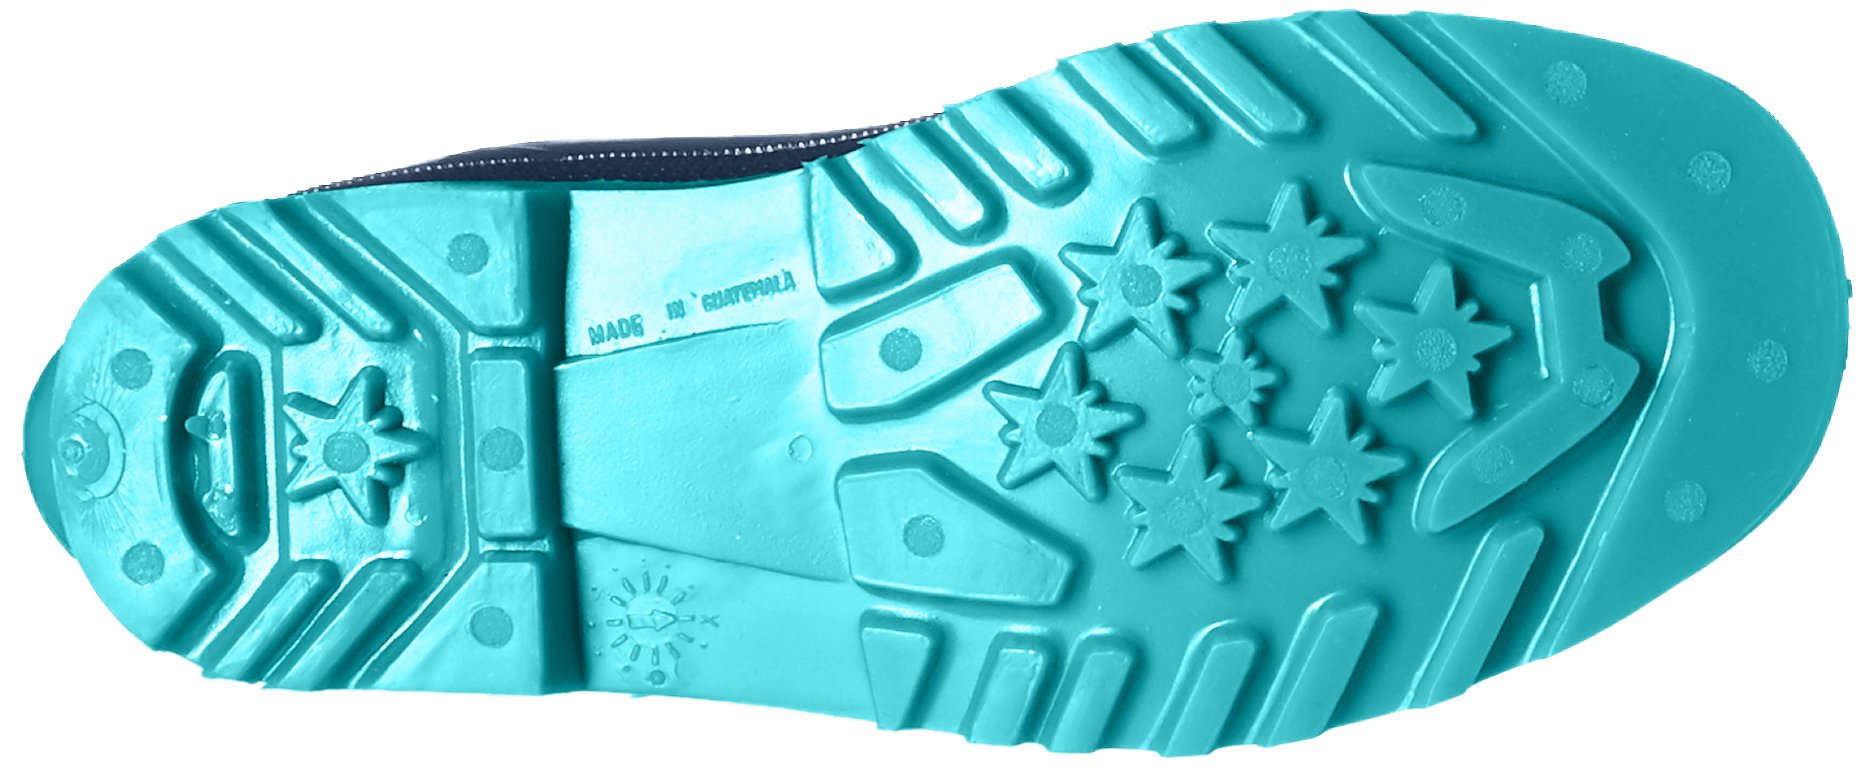 STORMTRACKS 11768.04 Youths' Boot, Size 04, Blue/Green by STORMTRACKS (Image #2)